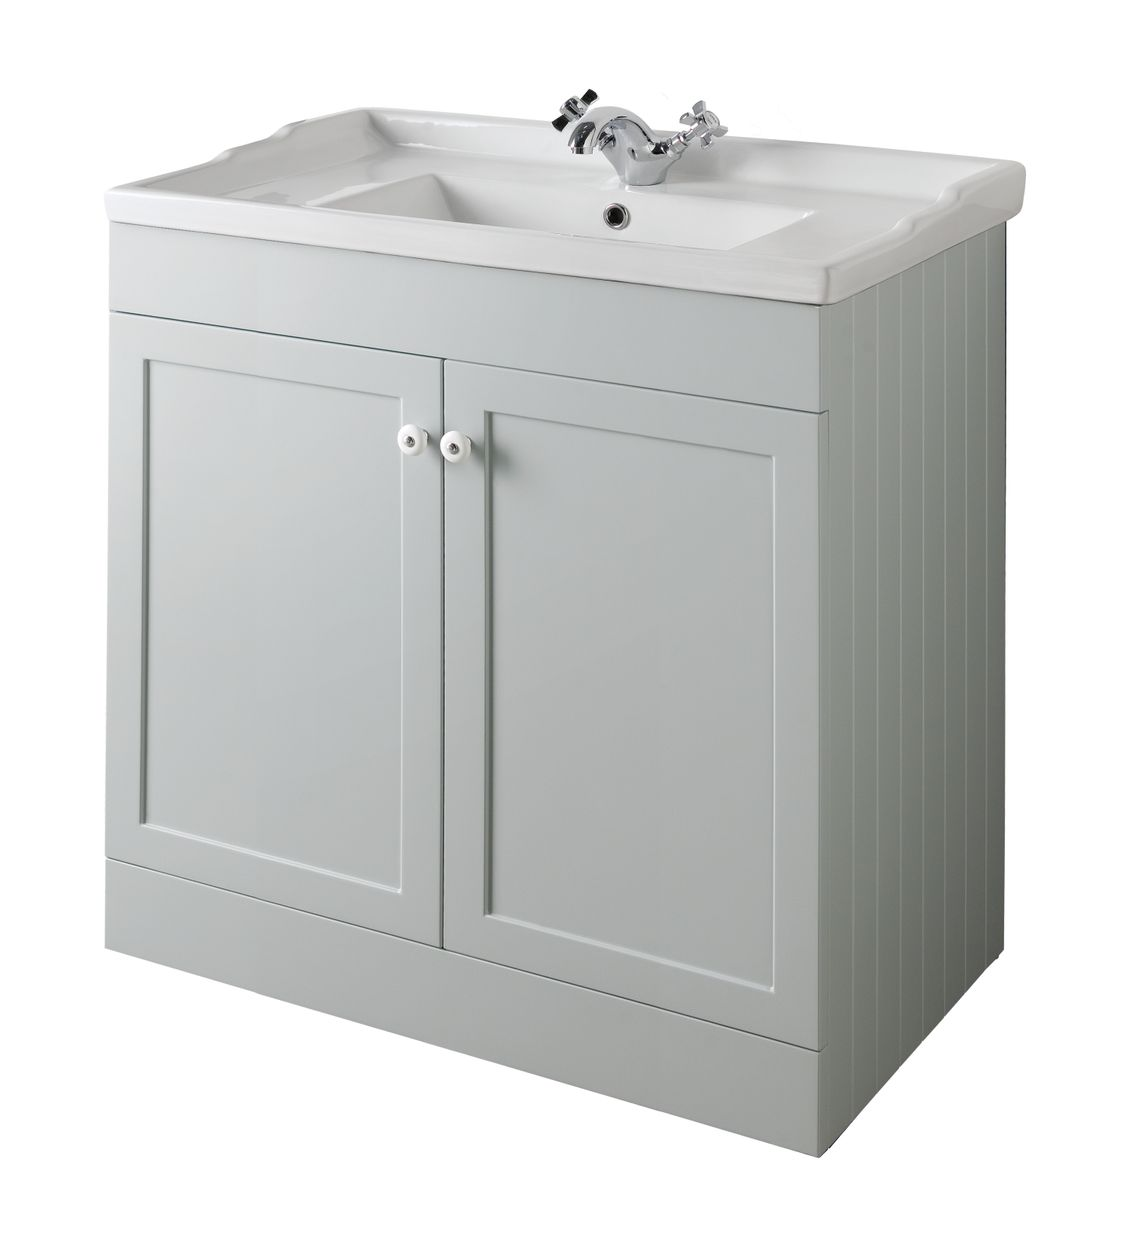 Bathroom Furniture, 800mm Unit - Matt Dove Grey, STRABANE WHOLESALE LTD, Strabane, Co. Tyrone